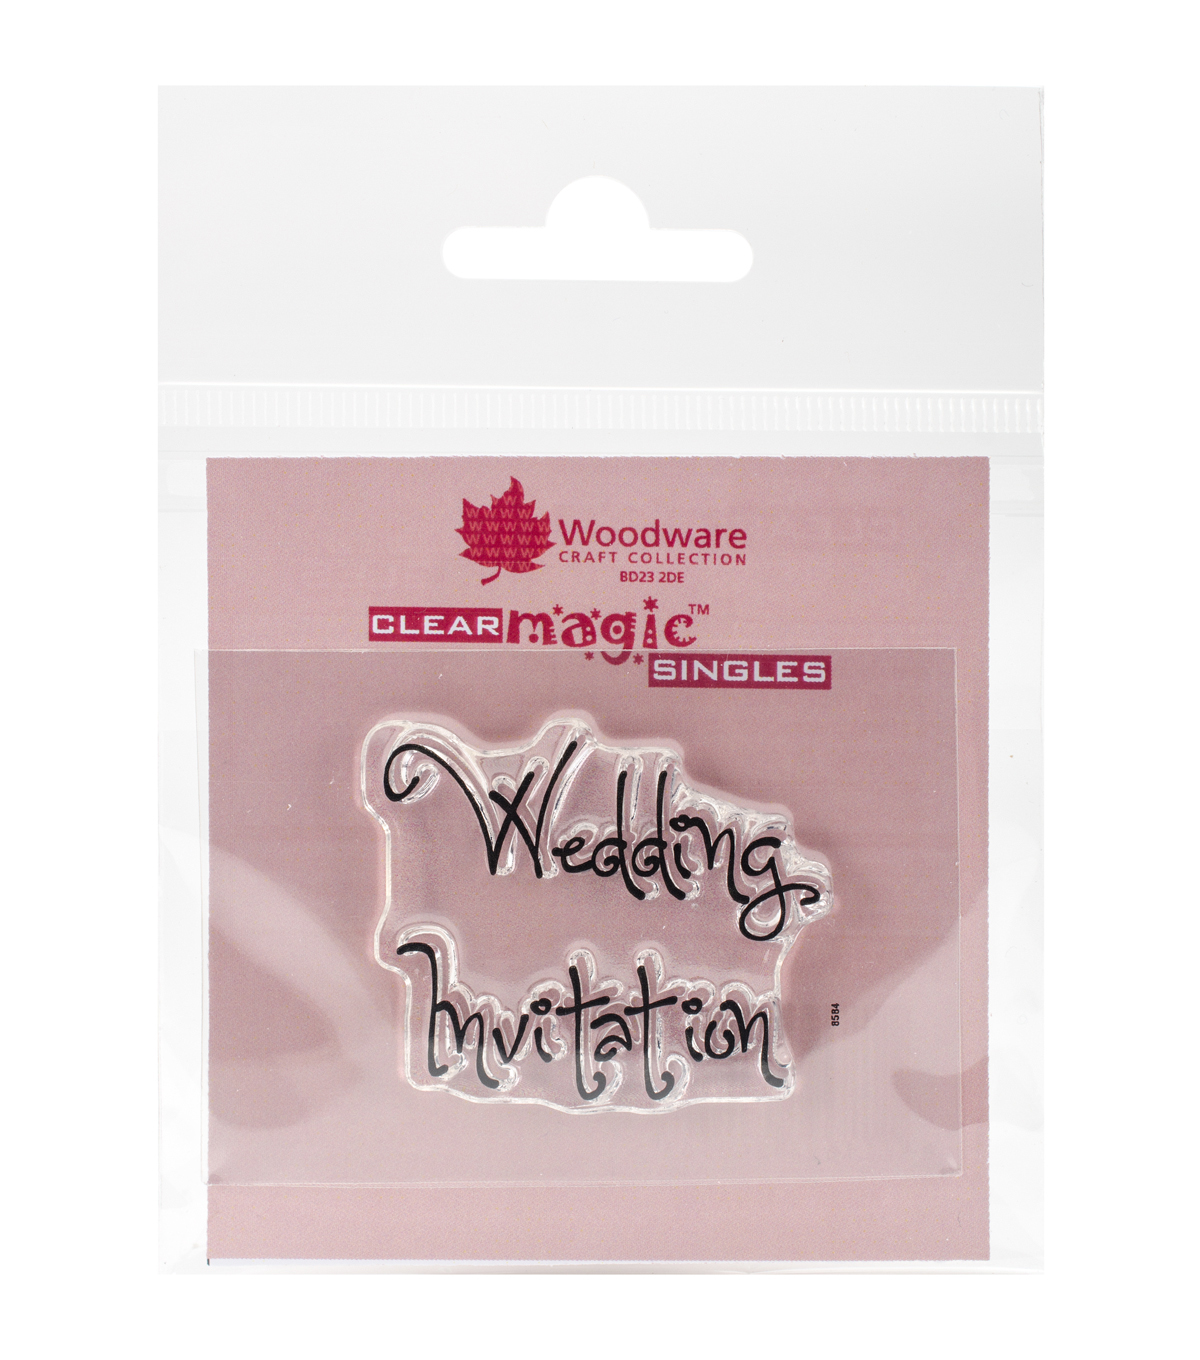 Woodware Craft Collection Clear Magic Single Stamps-Wedding Invitation